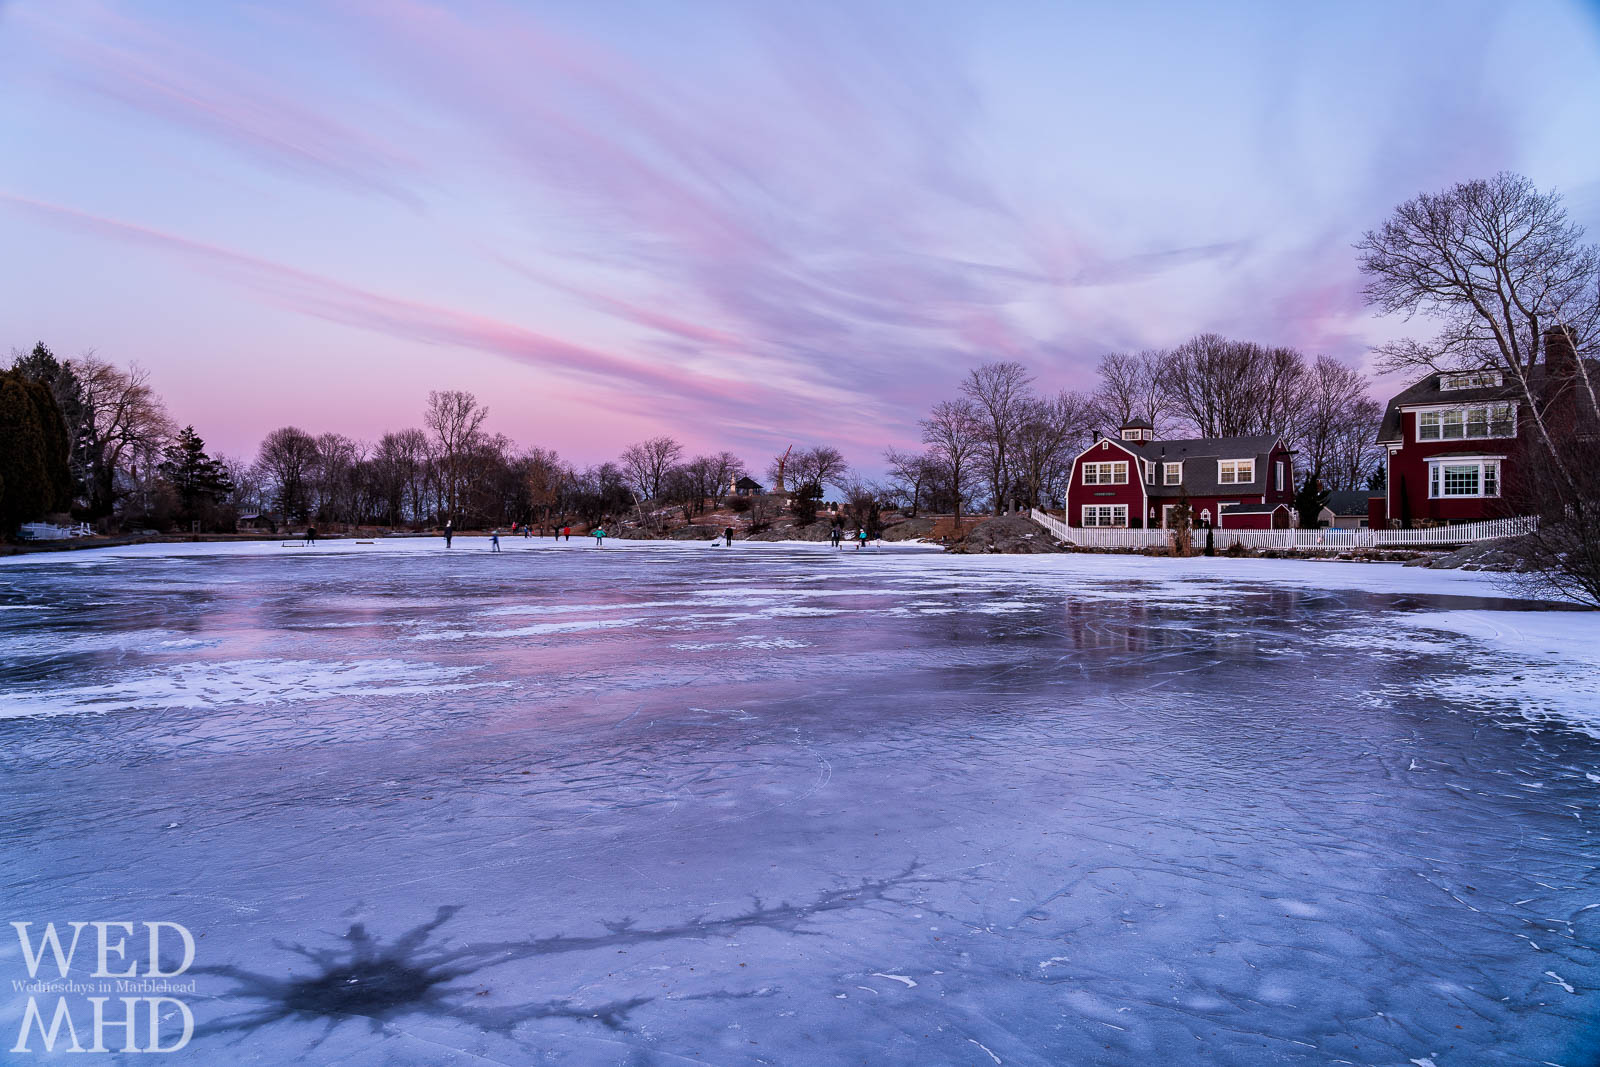 Adults and children gather on the ice at Redd's Pond for a sunset skate on a cold day in February